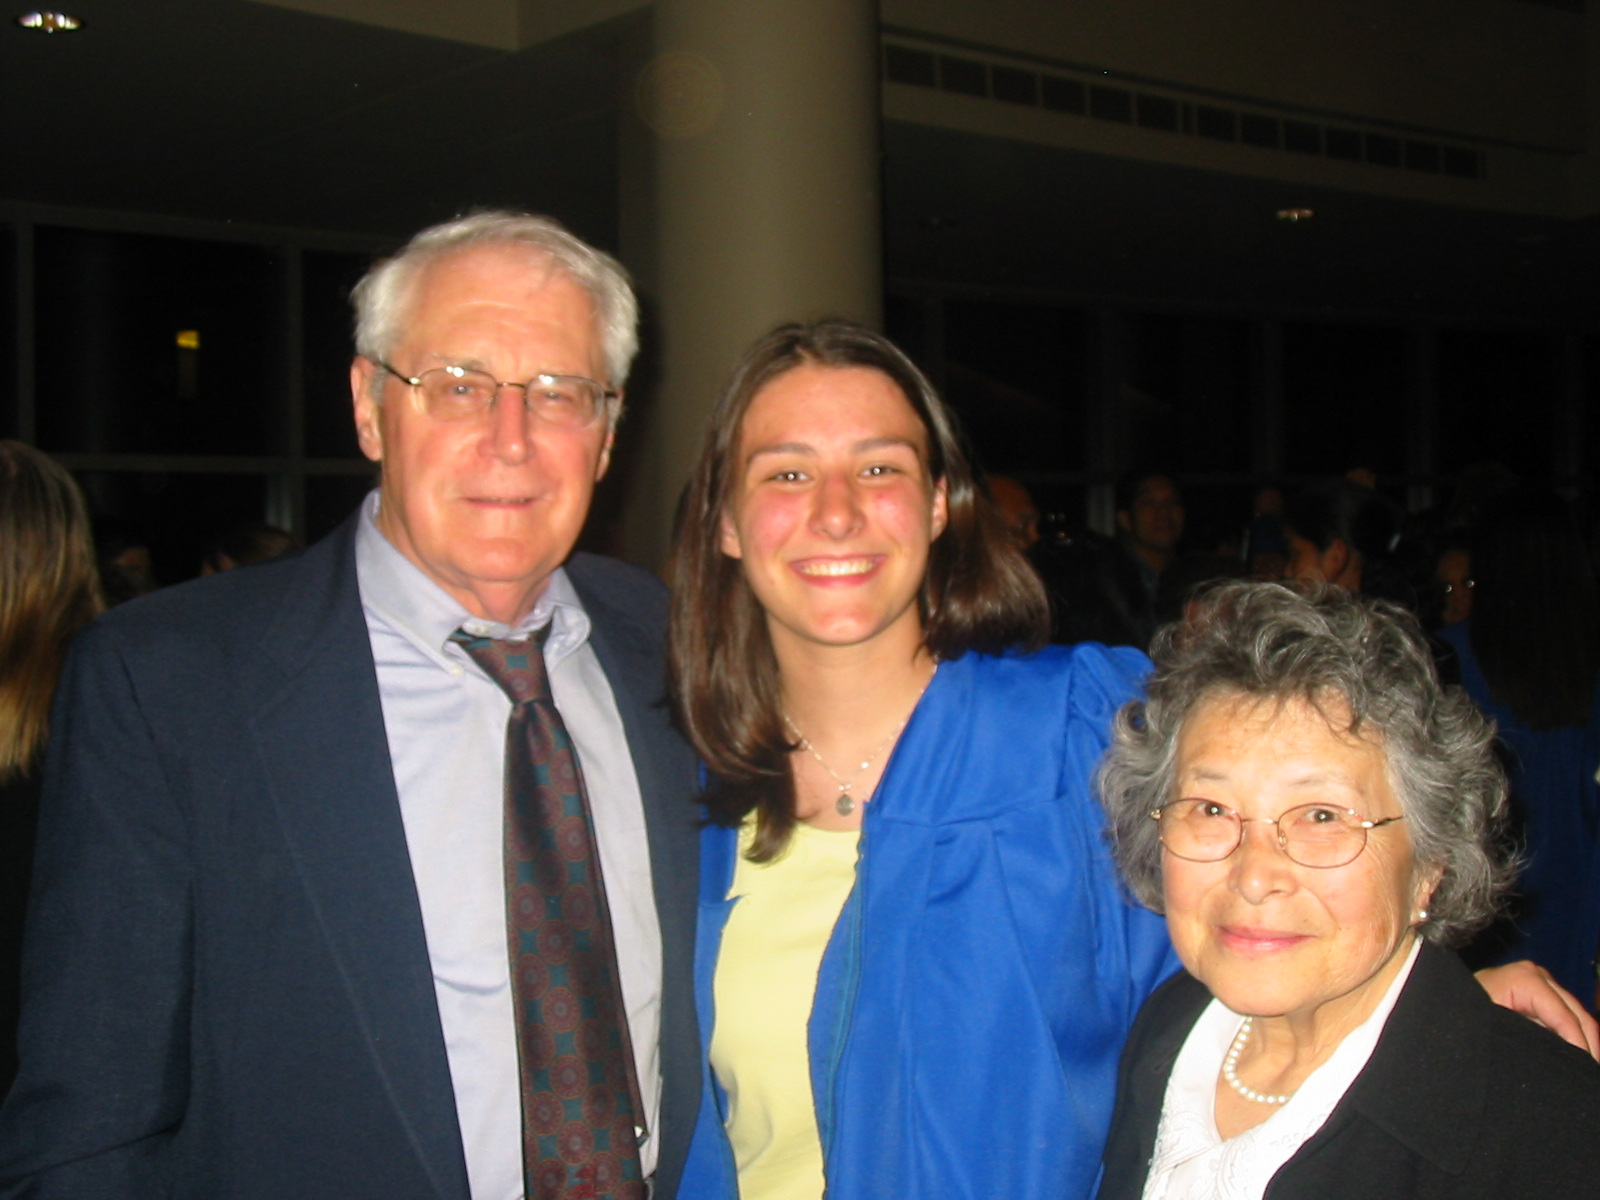 #TBT One of my better skin days: my high school graduation surrounded by my grandparents.